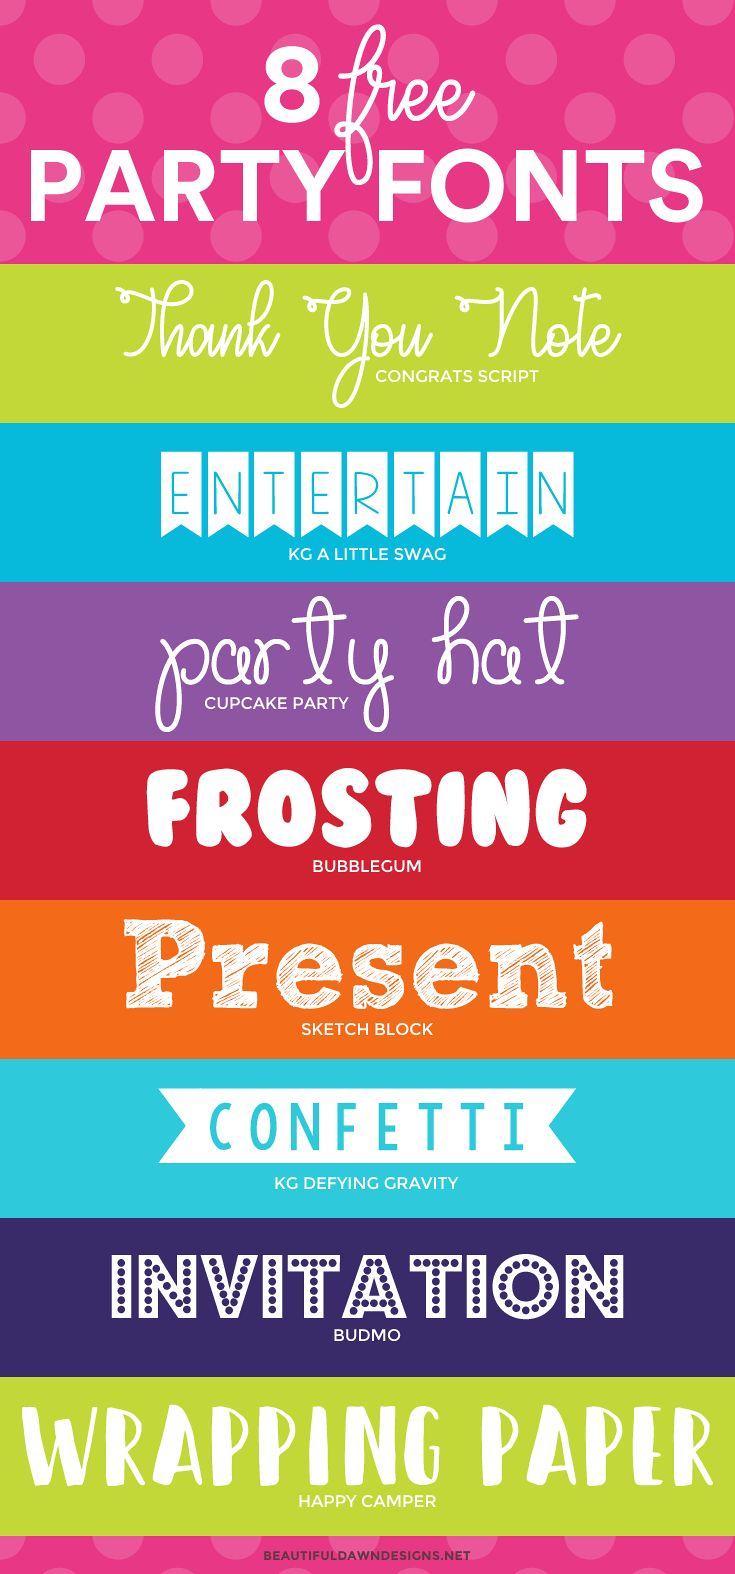 8 free party fonts. Free fonts. Free script fonts. via @tiffany_griffin